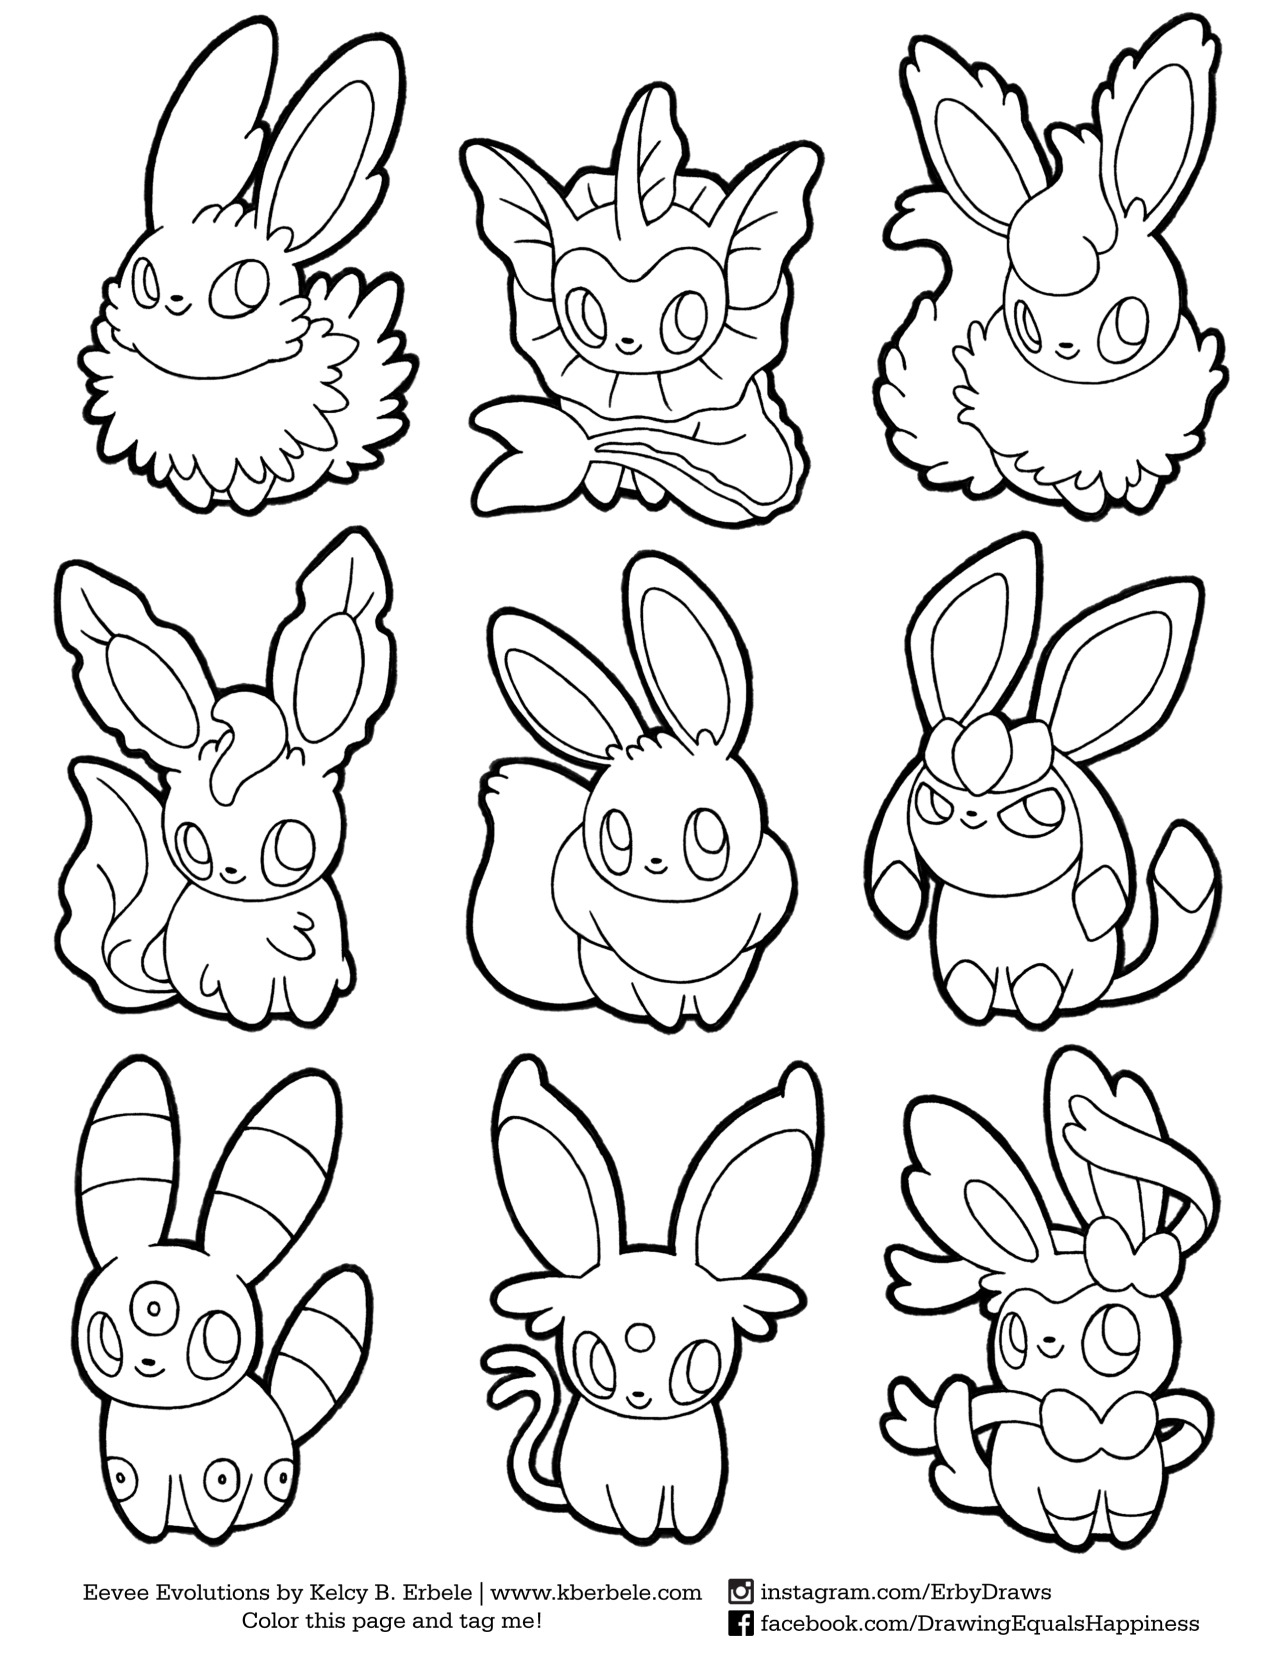 Eeveelutions Coloring Pages - Eeveelution Coloring Page the File is On My Drawing